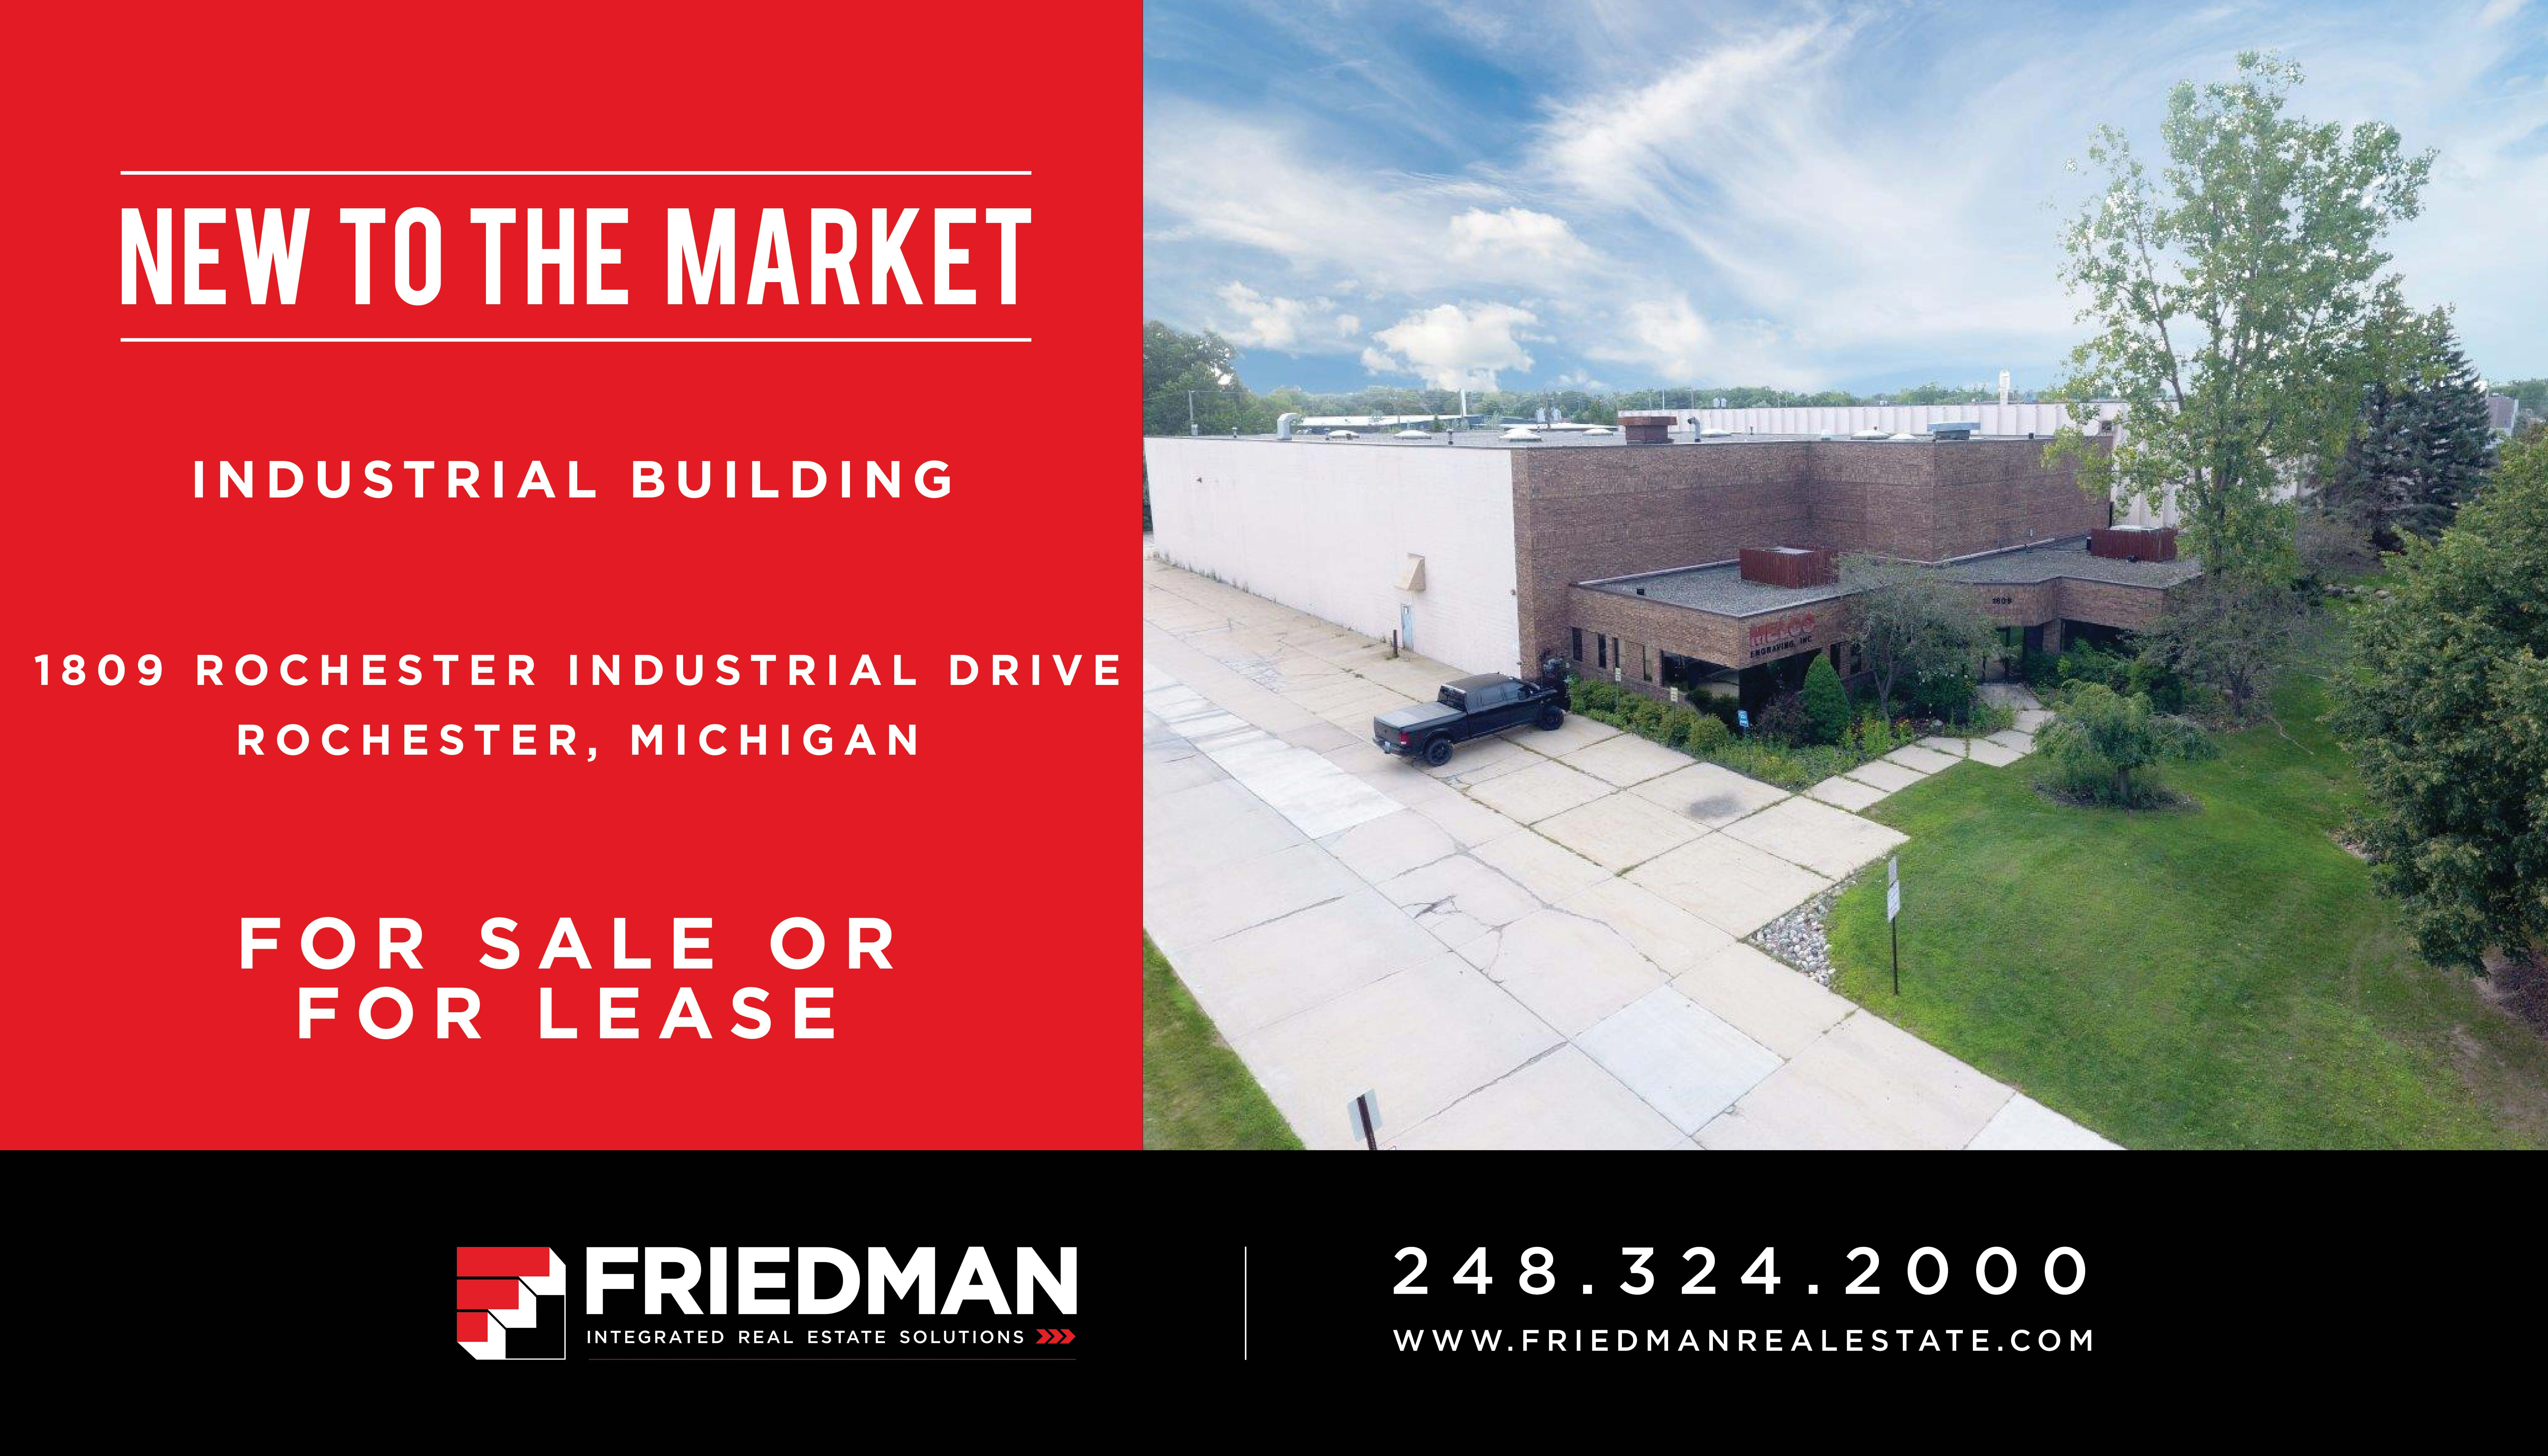 new to market for sale lease 22 709 sf single tenant industrial